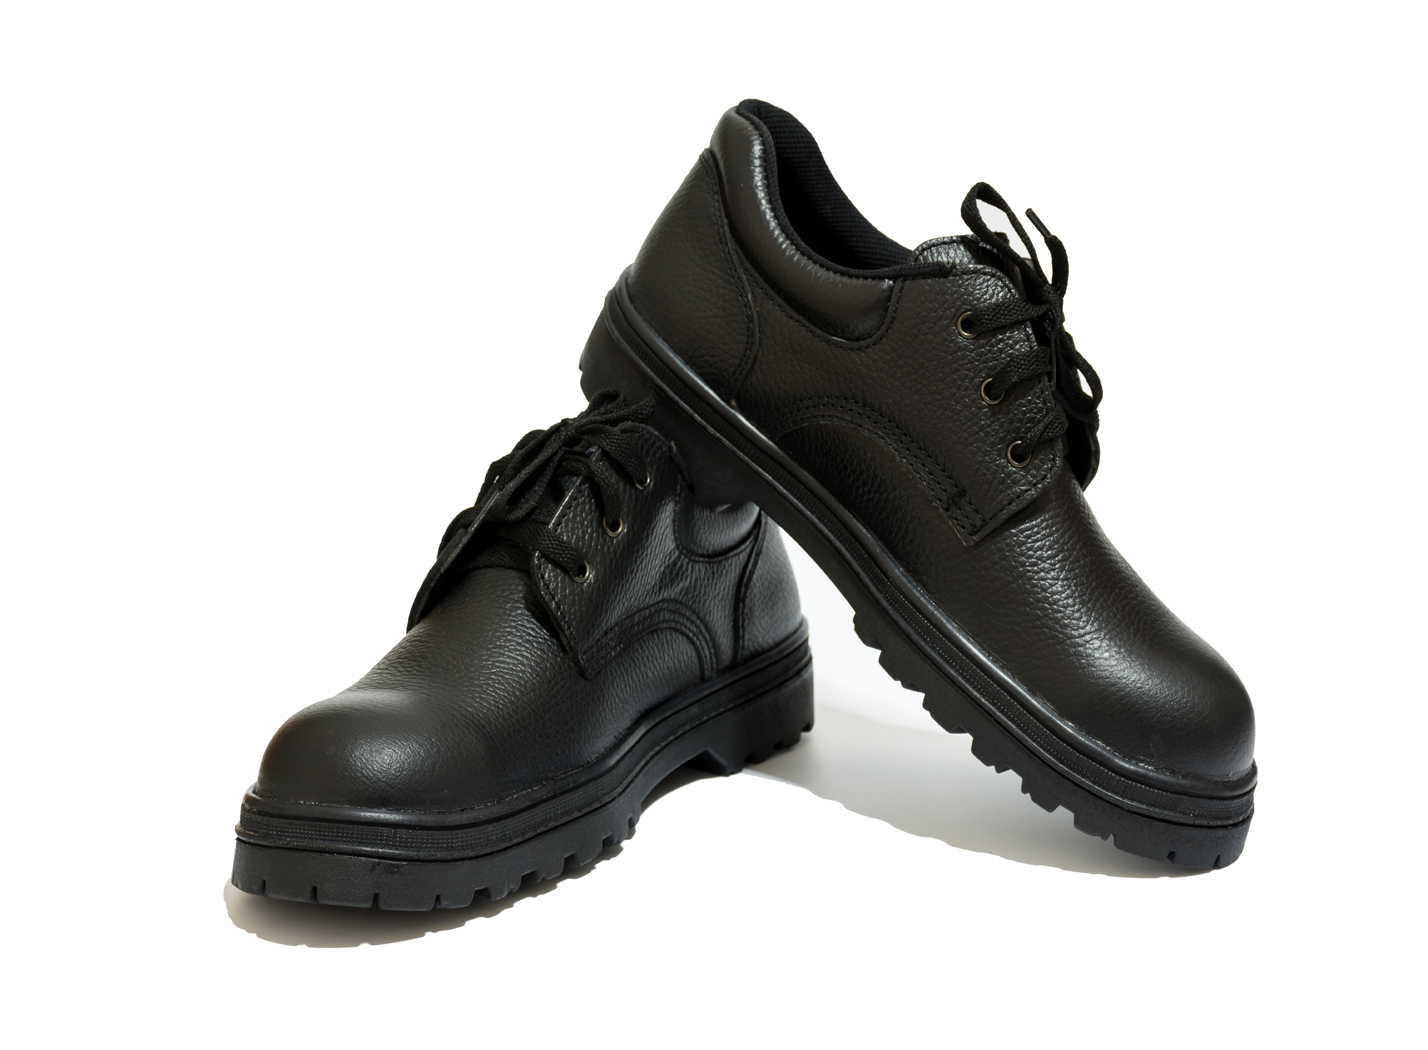 comforter black cozard slip work shoes skechers womens products comfortable brand resistant img